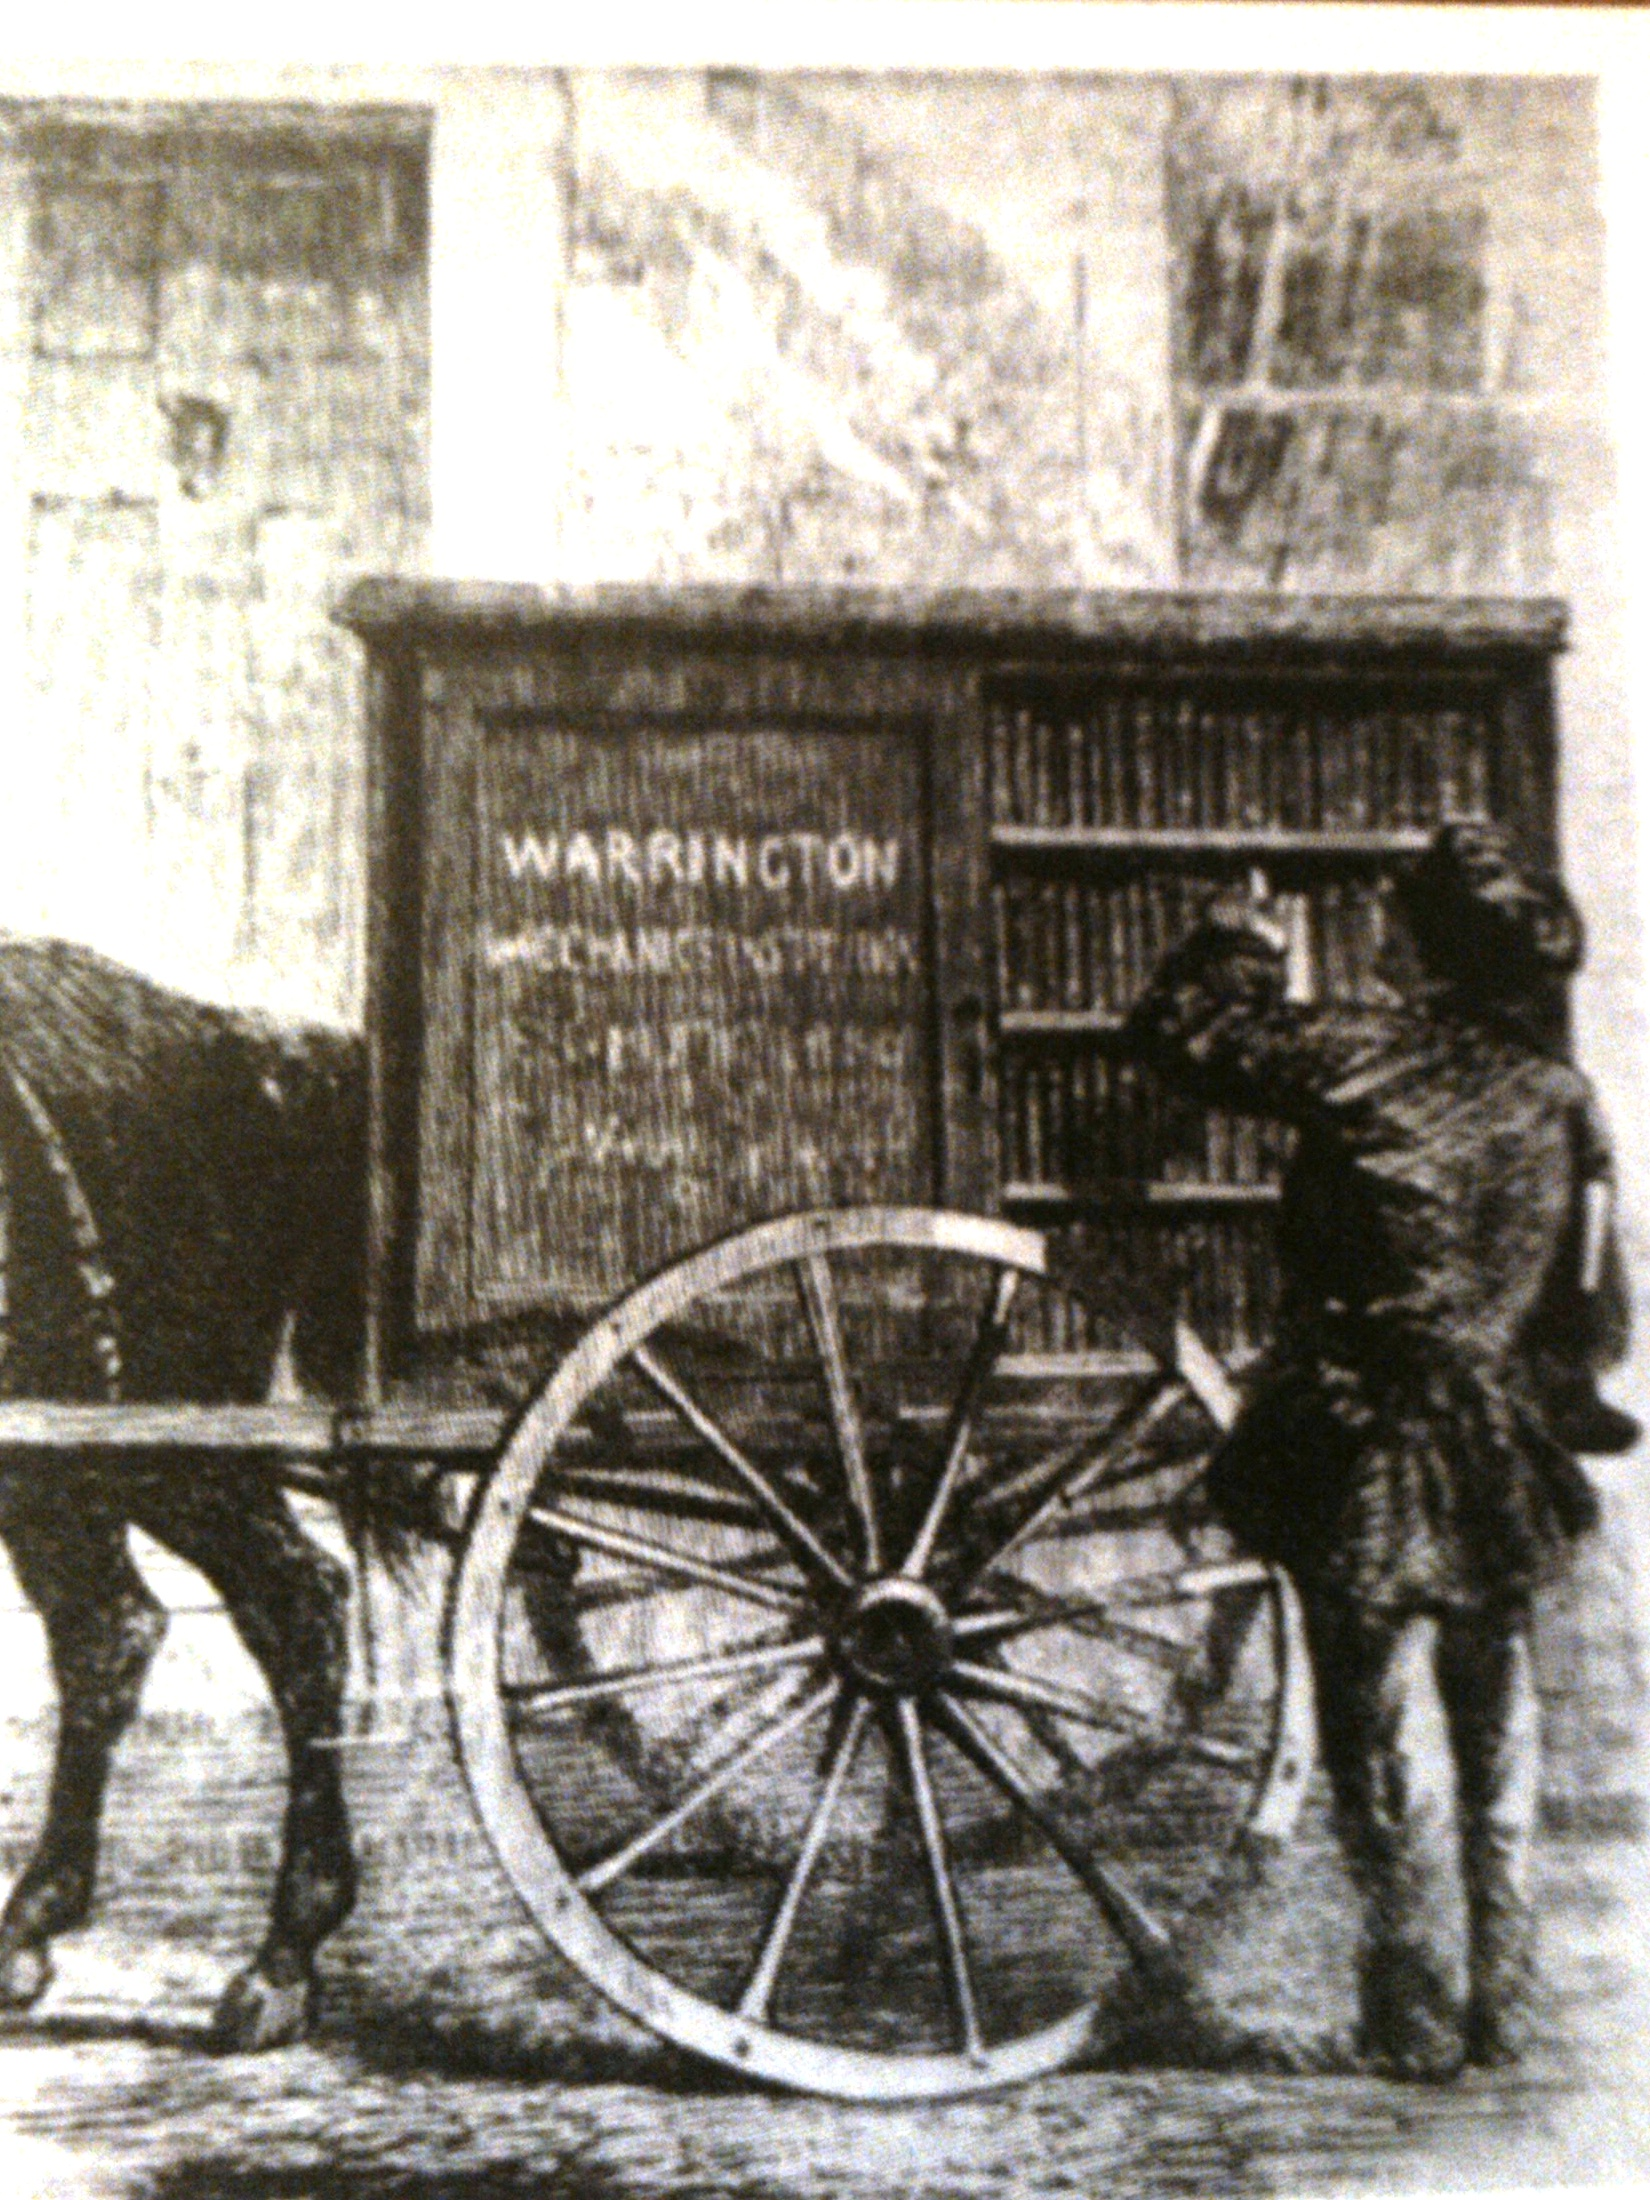 Book cabinet on horse-drawn cart